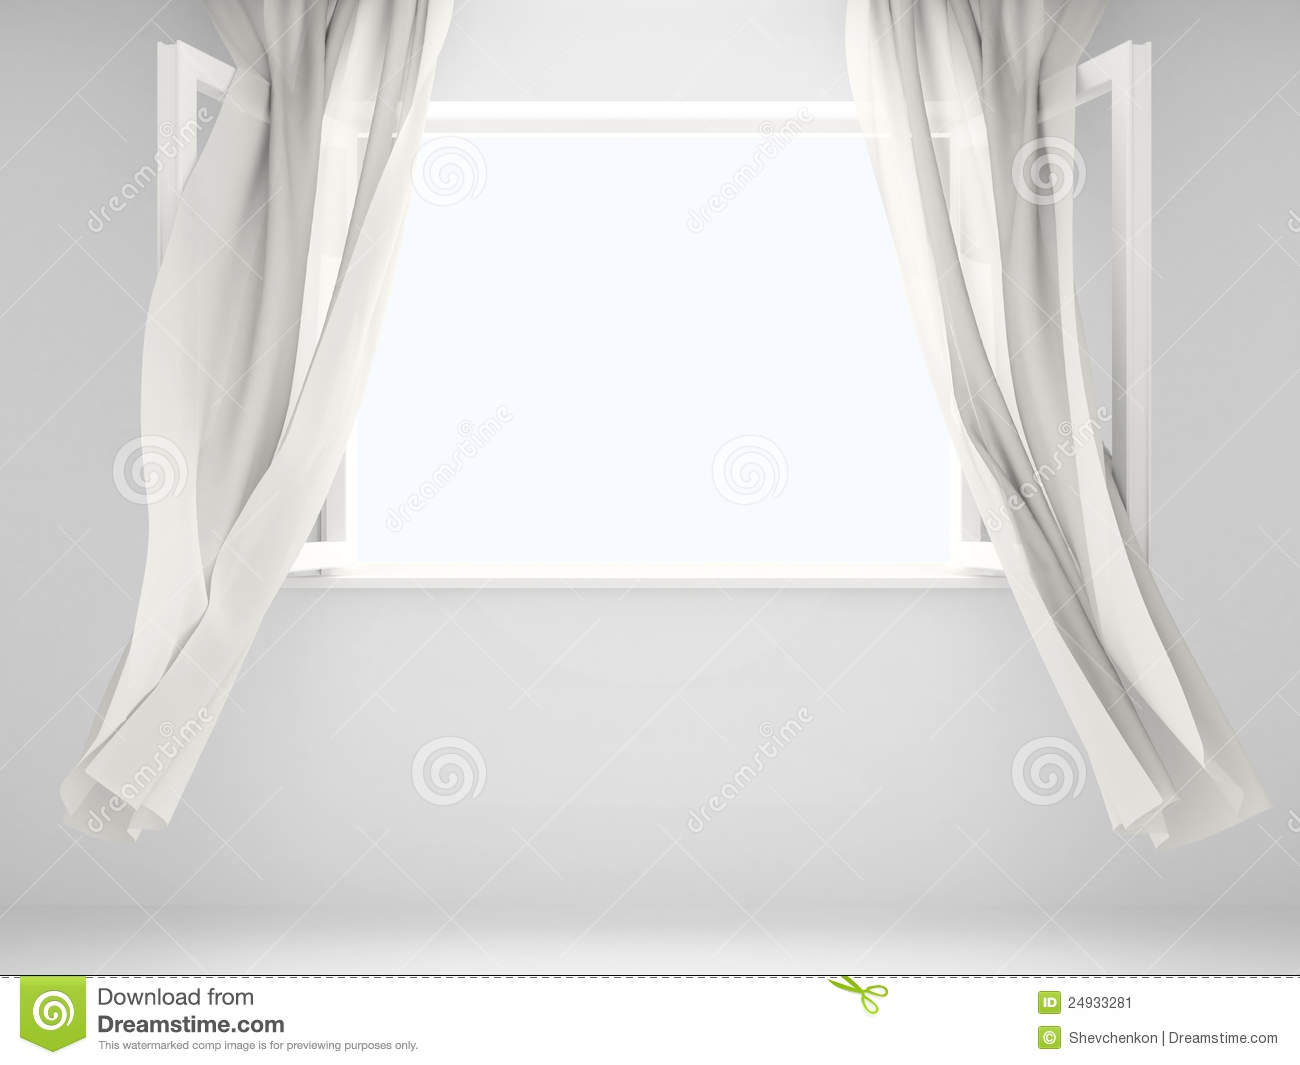 Open window with curtains blowing -